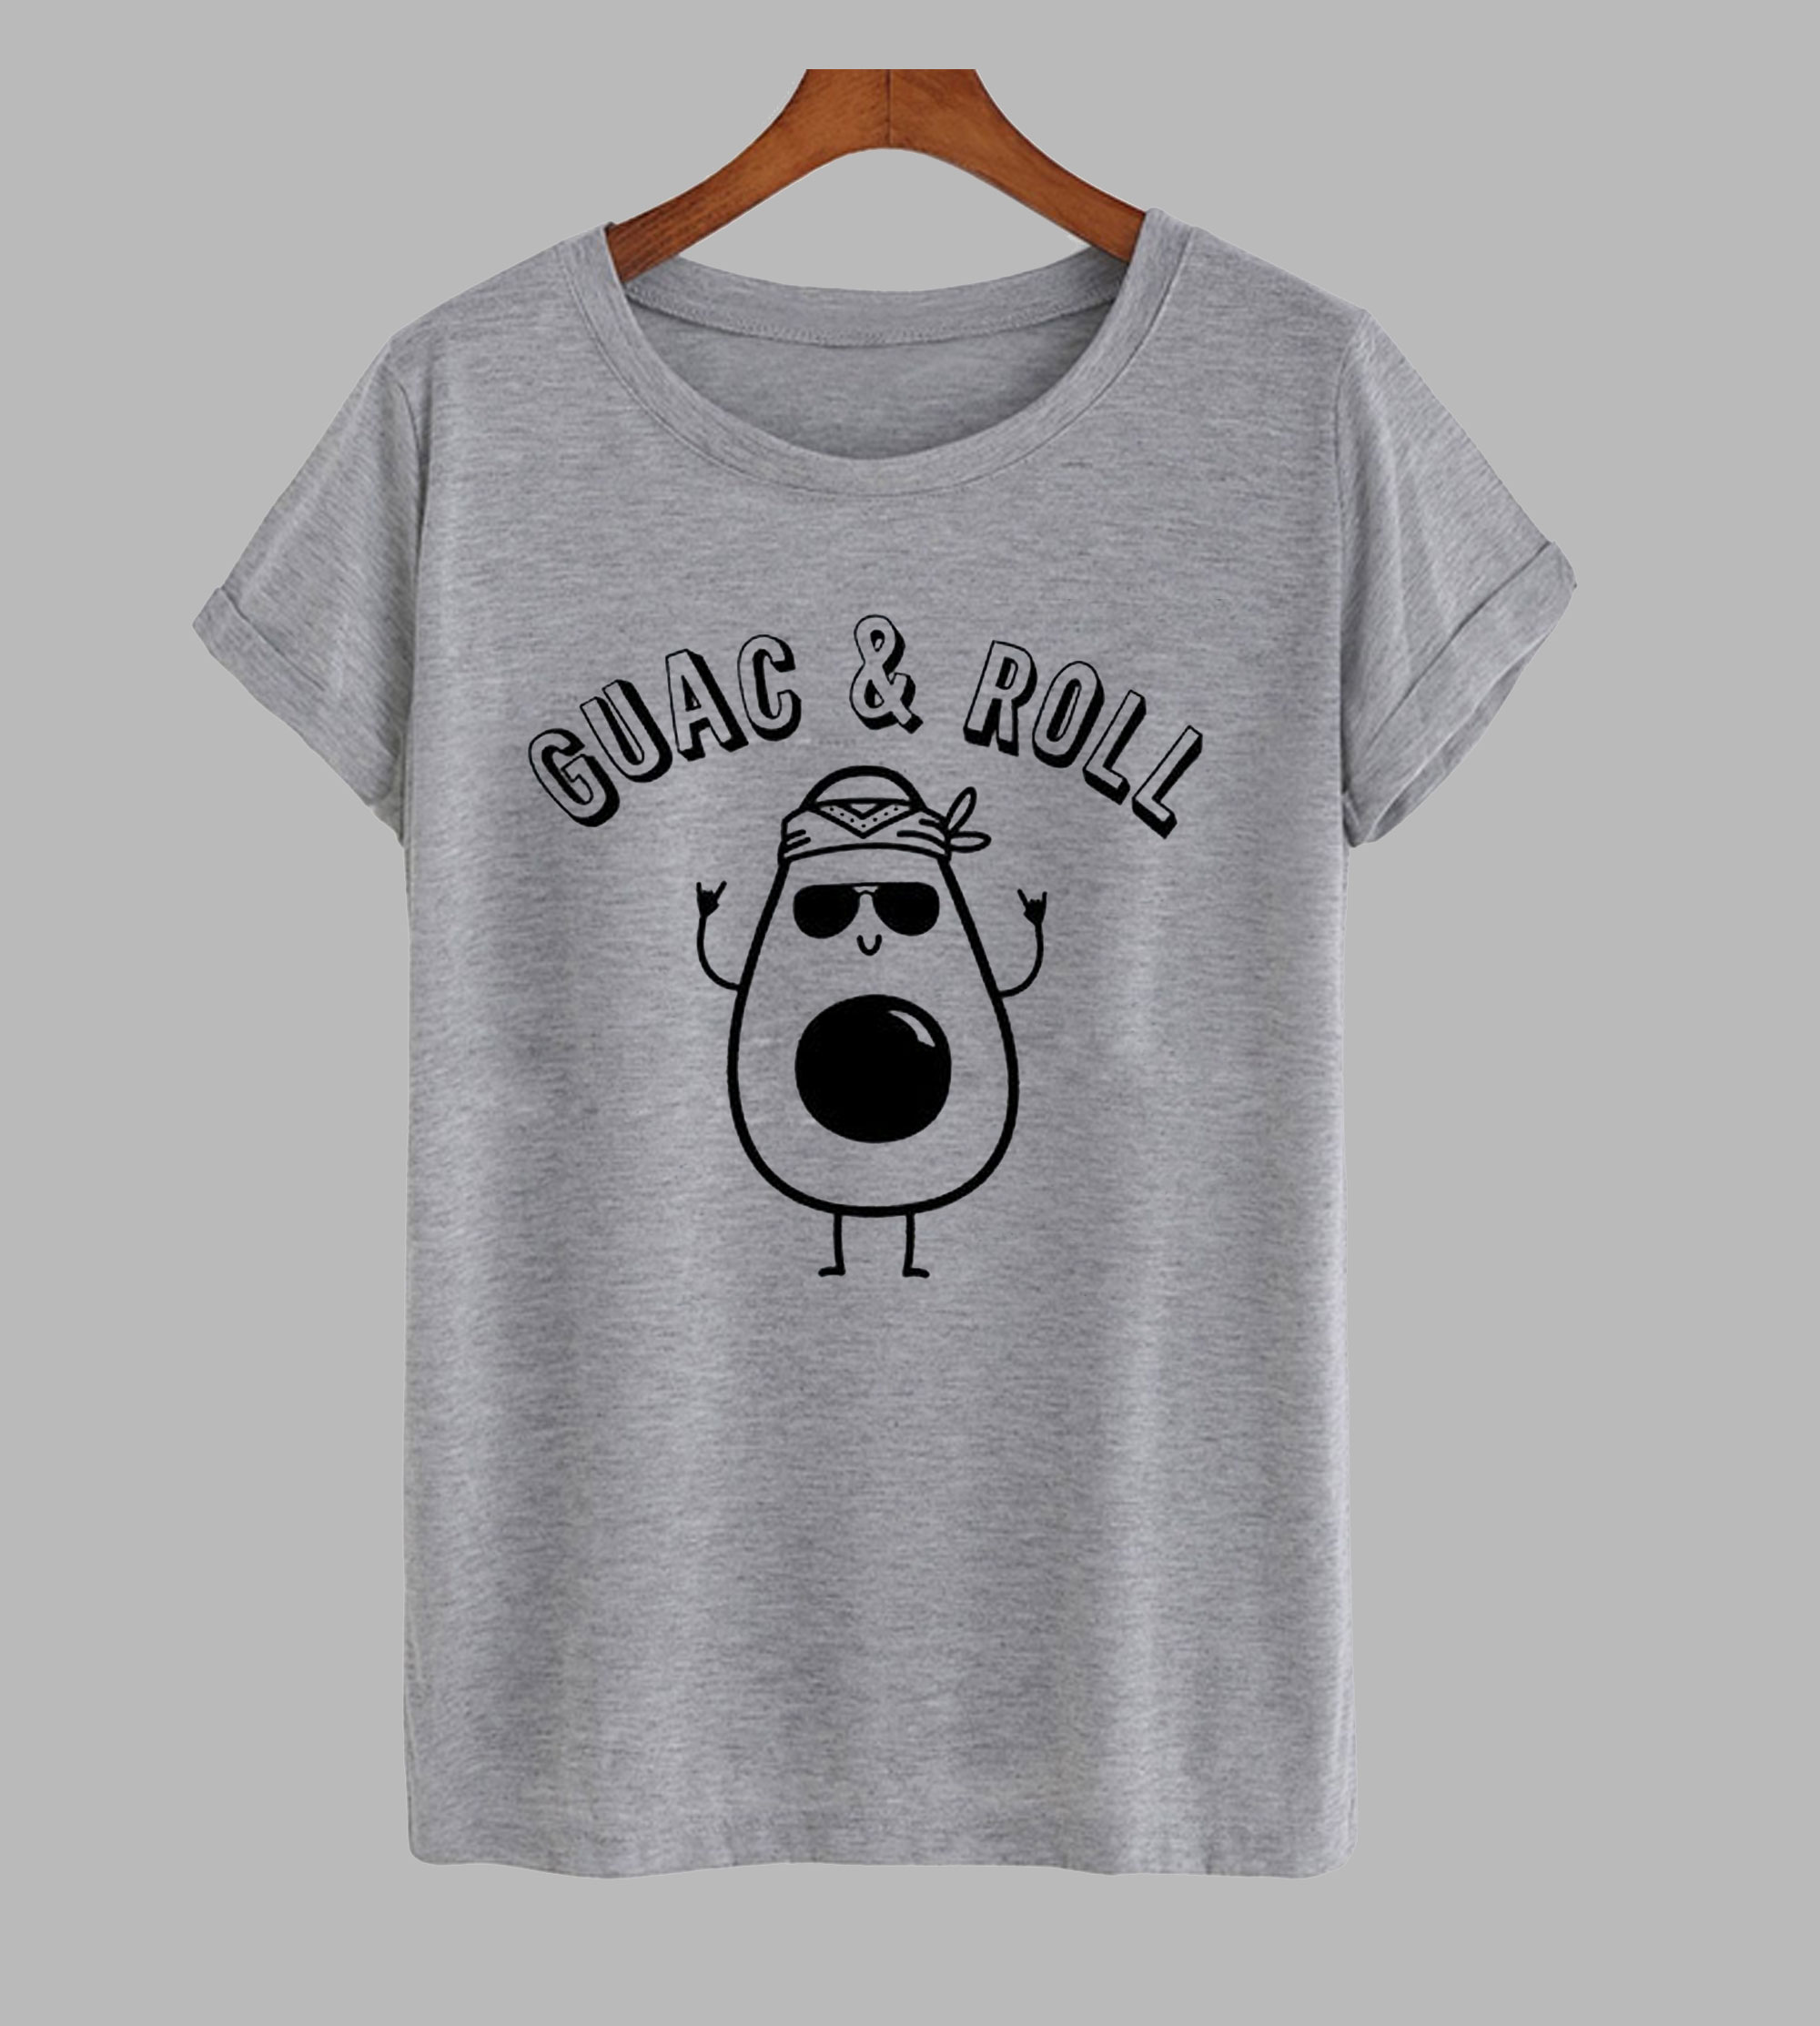 Guac and Roll T shirt